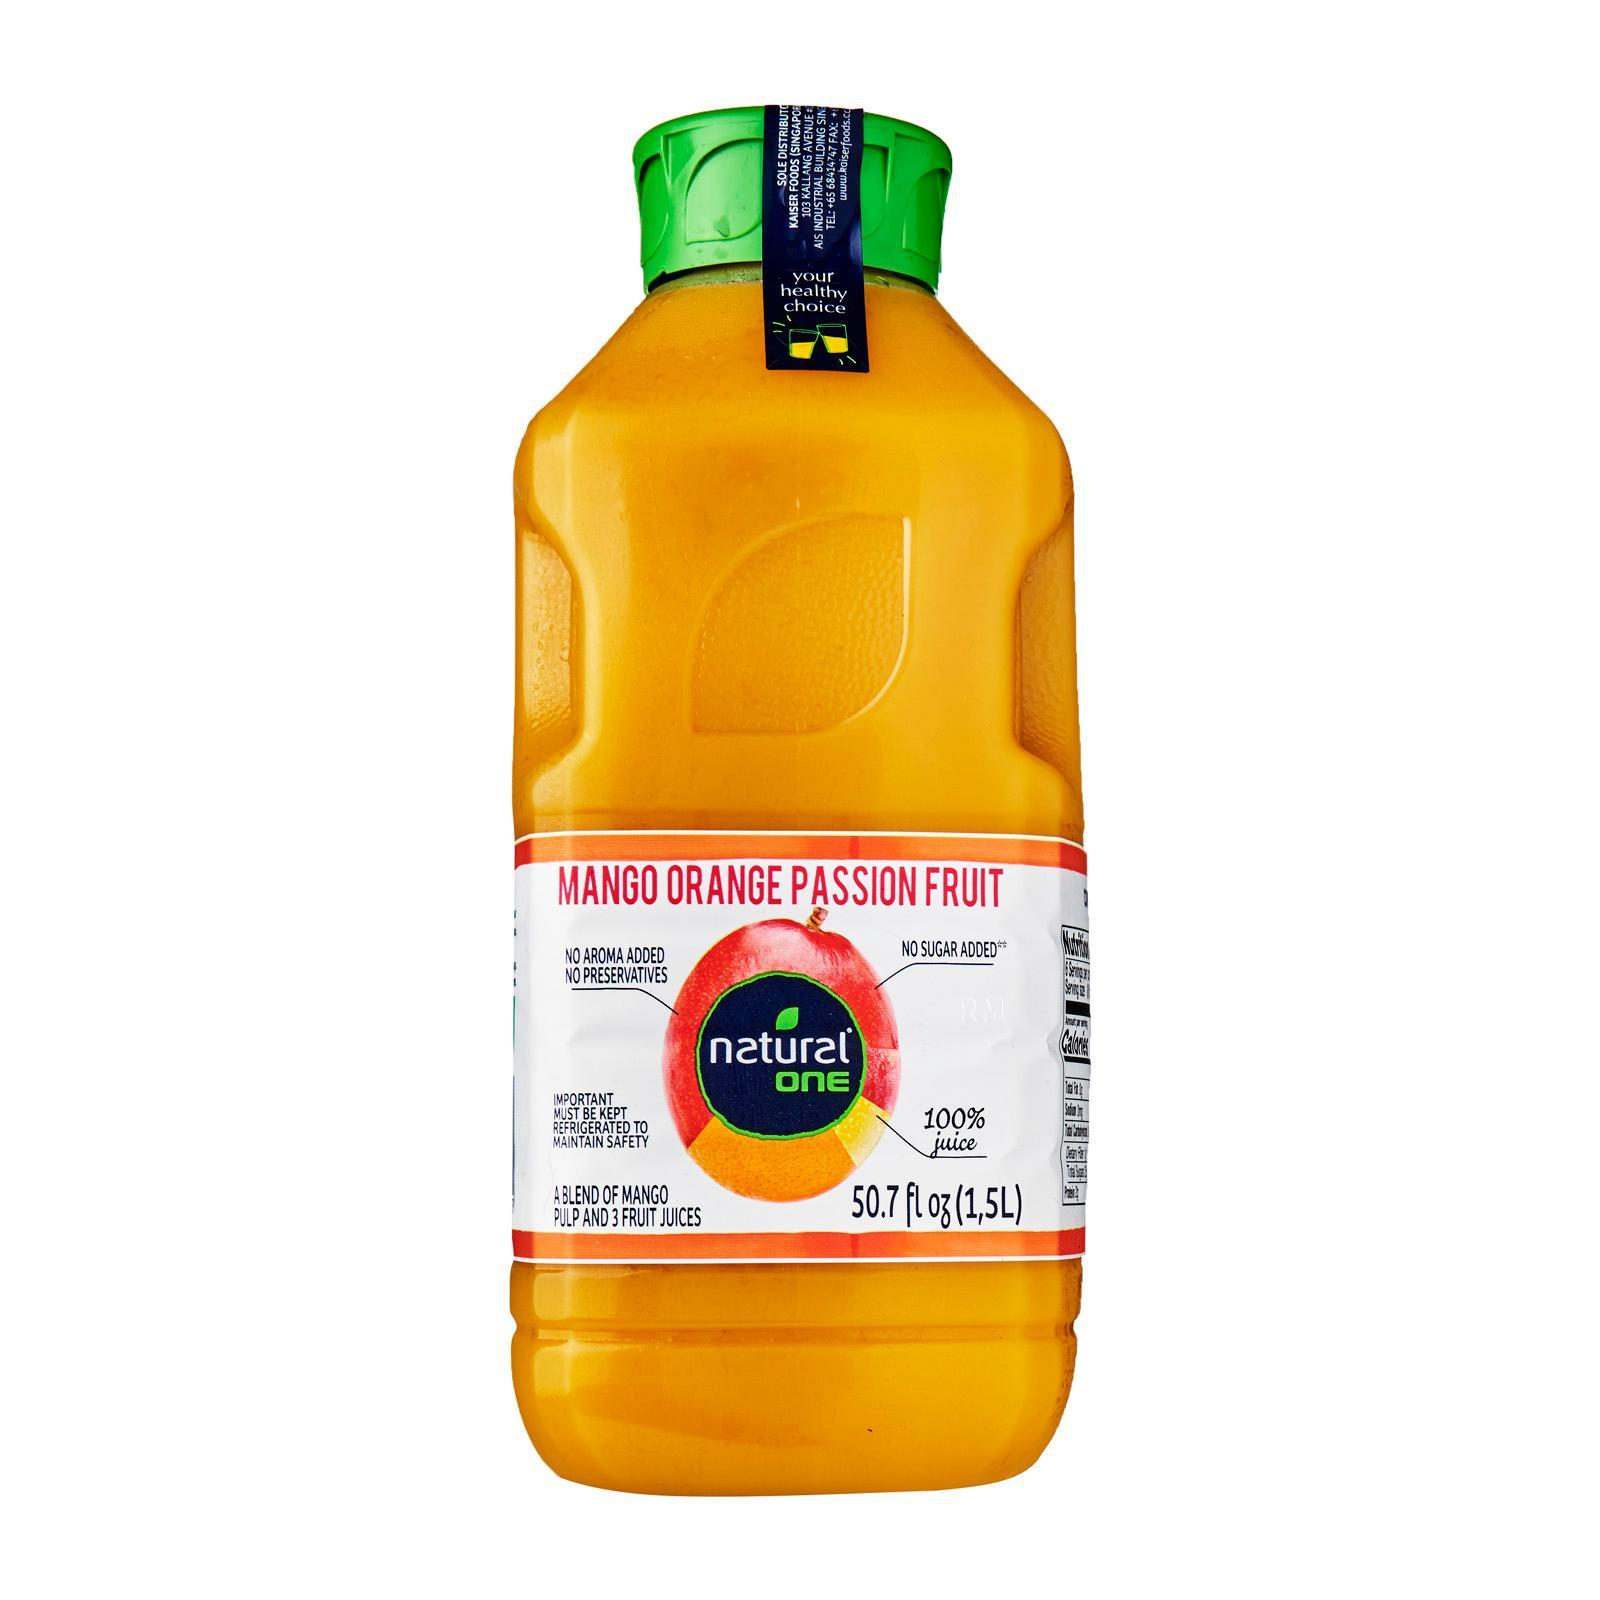 Natural One Mango Orange Passionfruit Juice